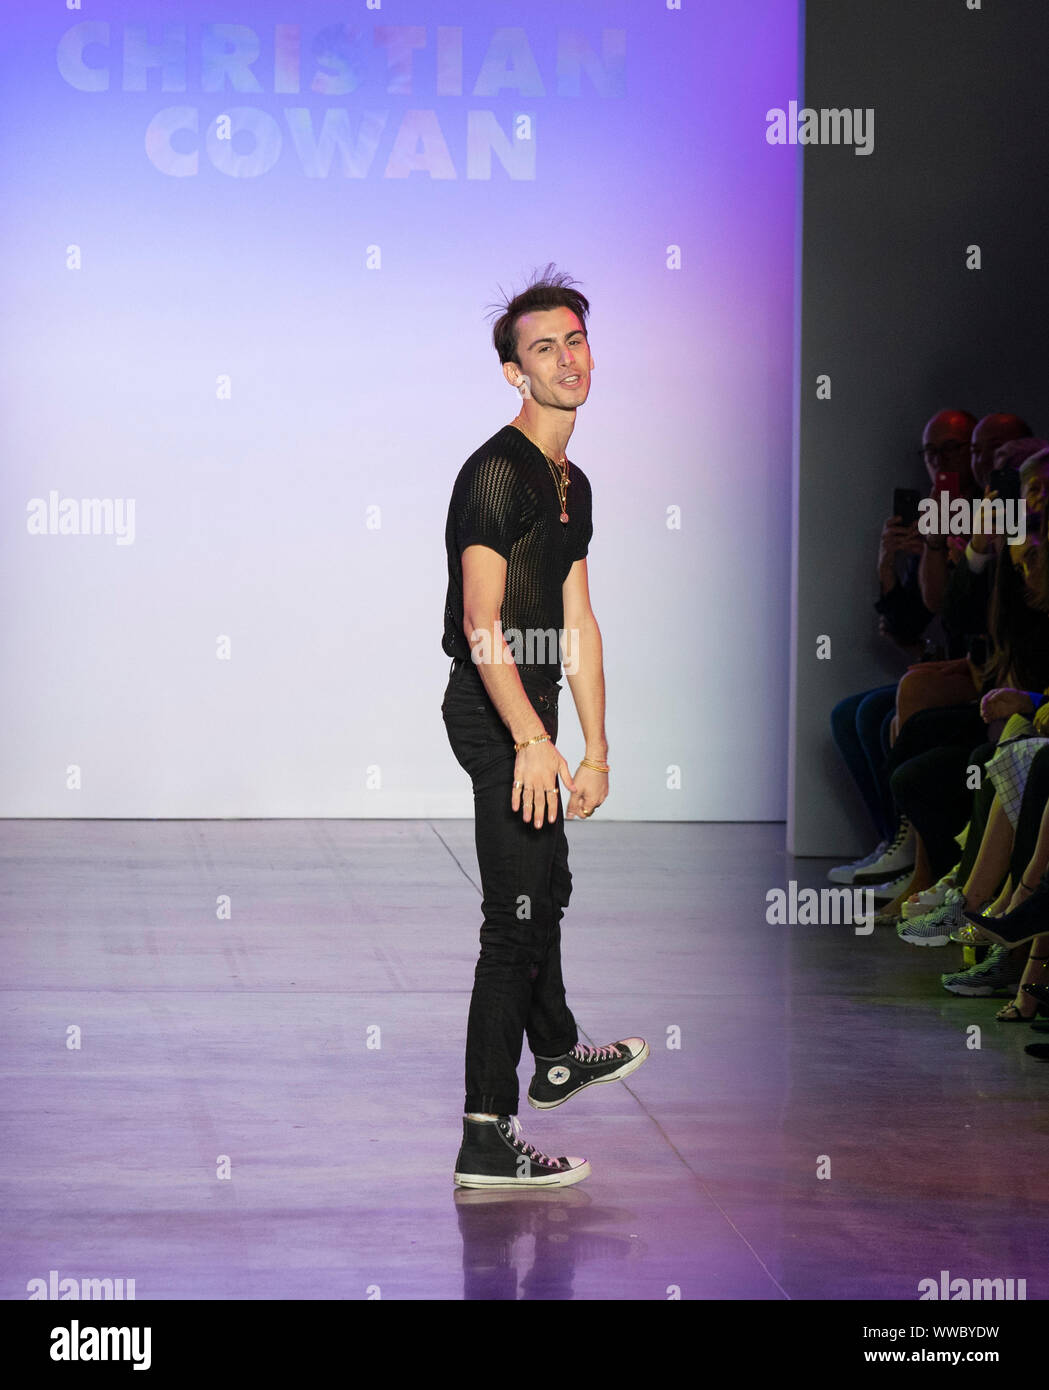 New York Ny September 10 2019 Designer Christian Cowan Walks Runway For Christian Cowan Show At Spring Summer 2020 Fashion Week At Spring Studios Stock Photo Alamy